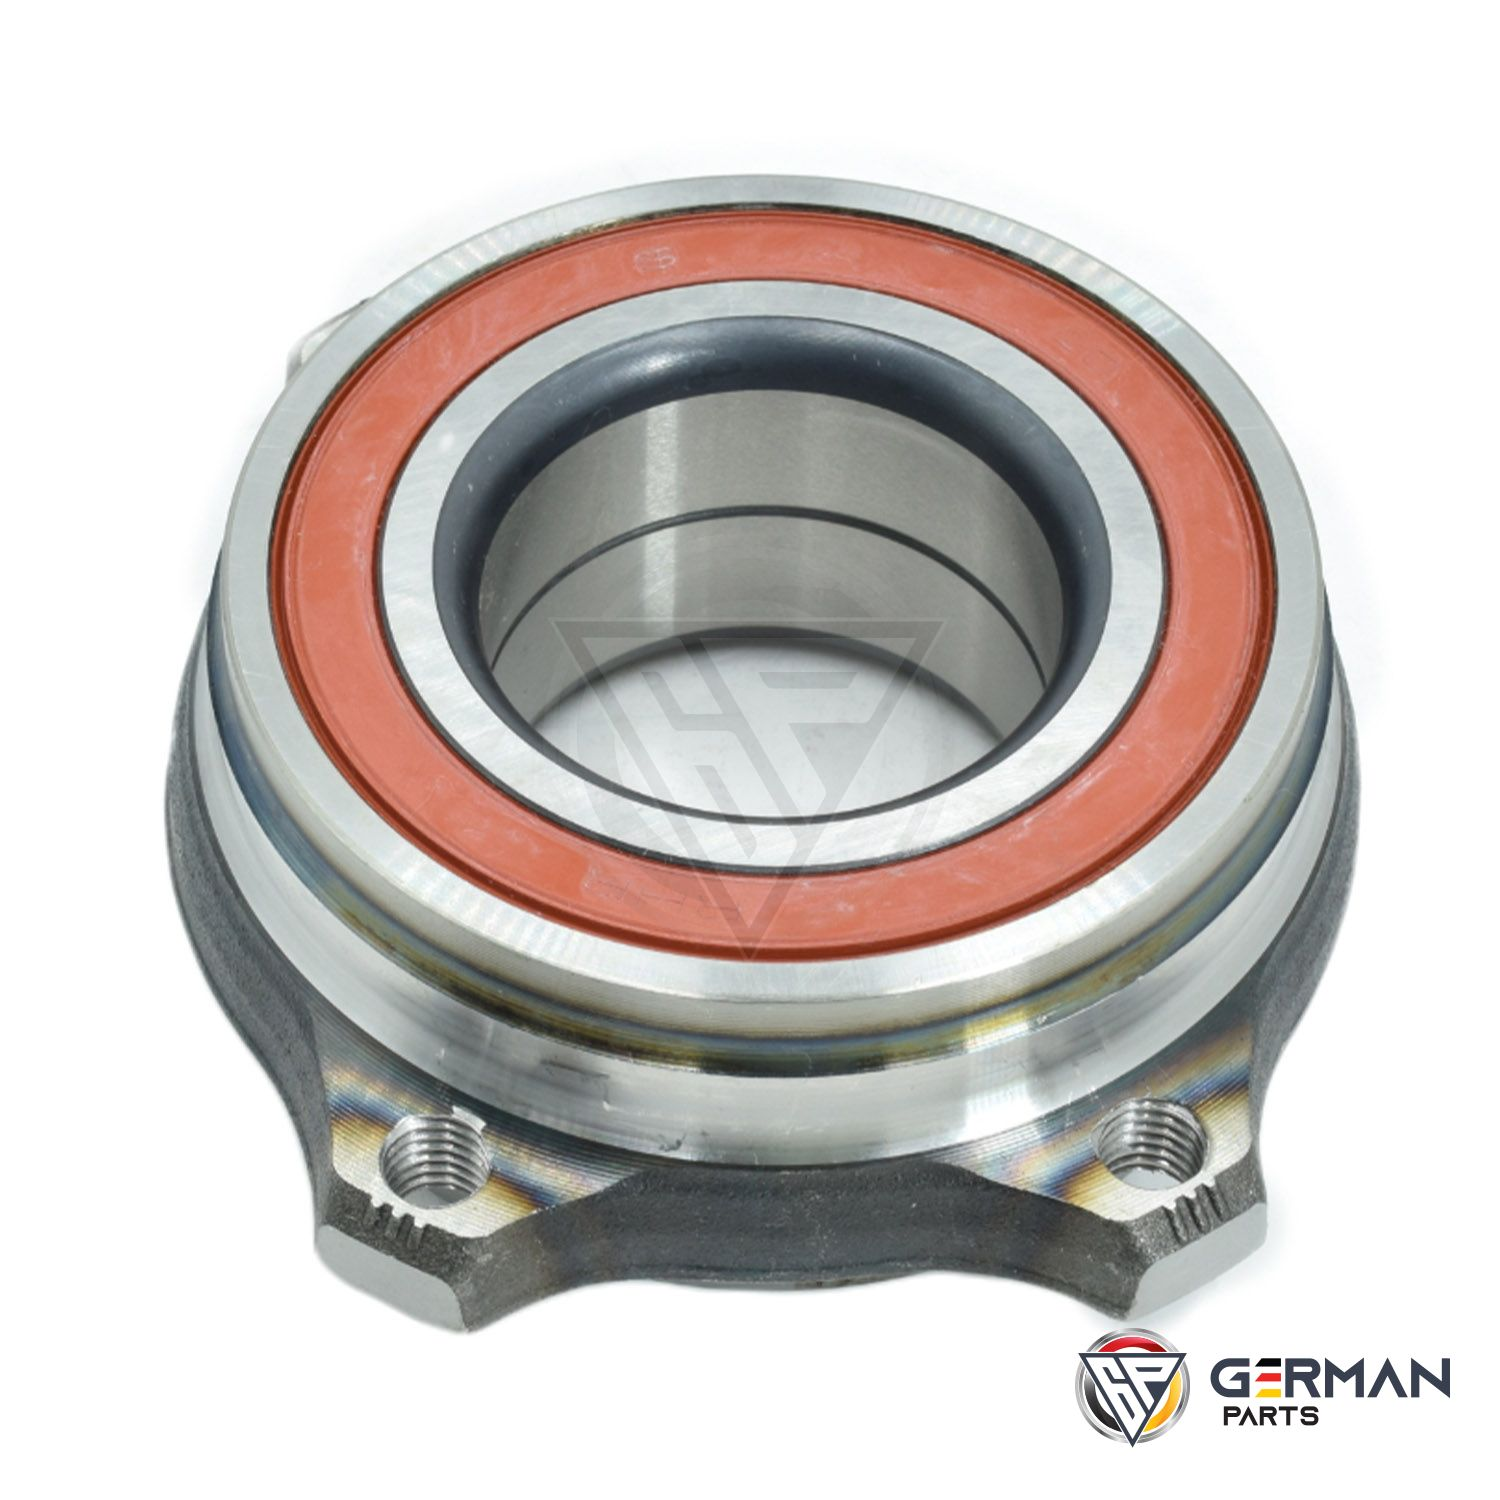 Buy Genuine Mercedes Benz Rear Wheel Bearing 2309810127 - German Parts